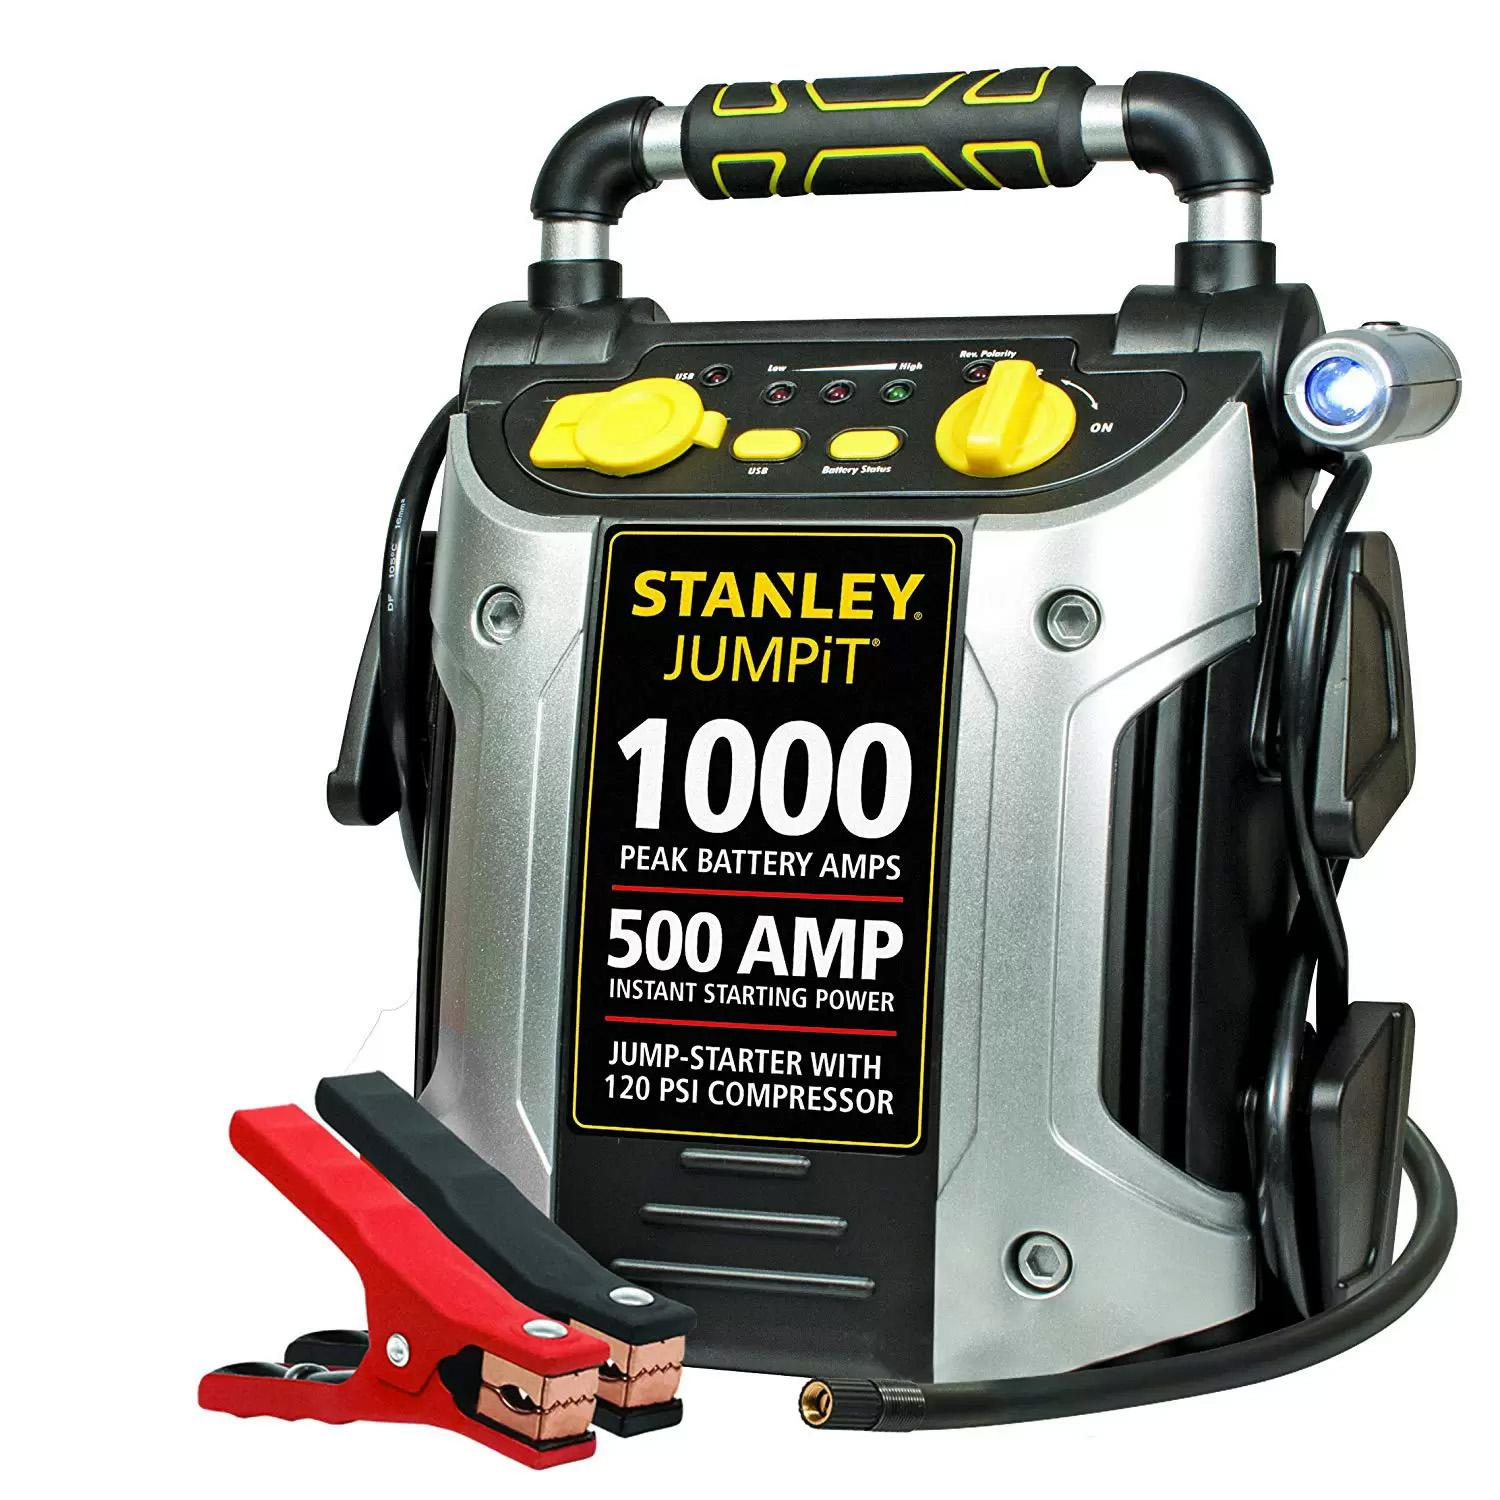 Stanley J5C09 1000 Amp Peak Jump Starter with Air Compressor for $47.09 Shipped